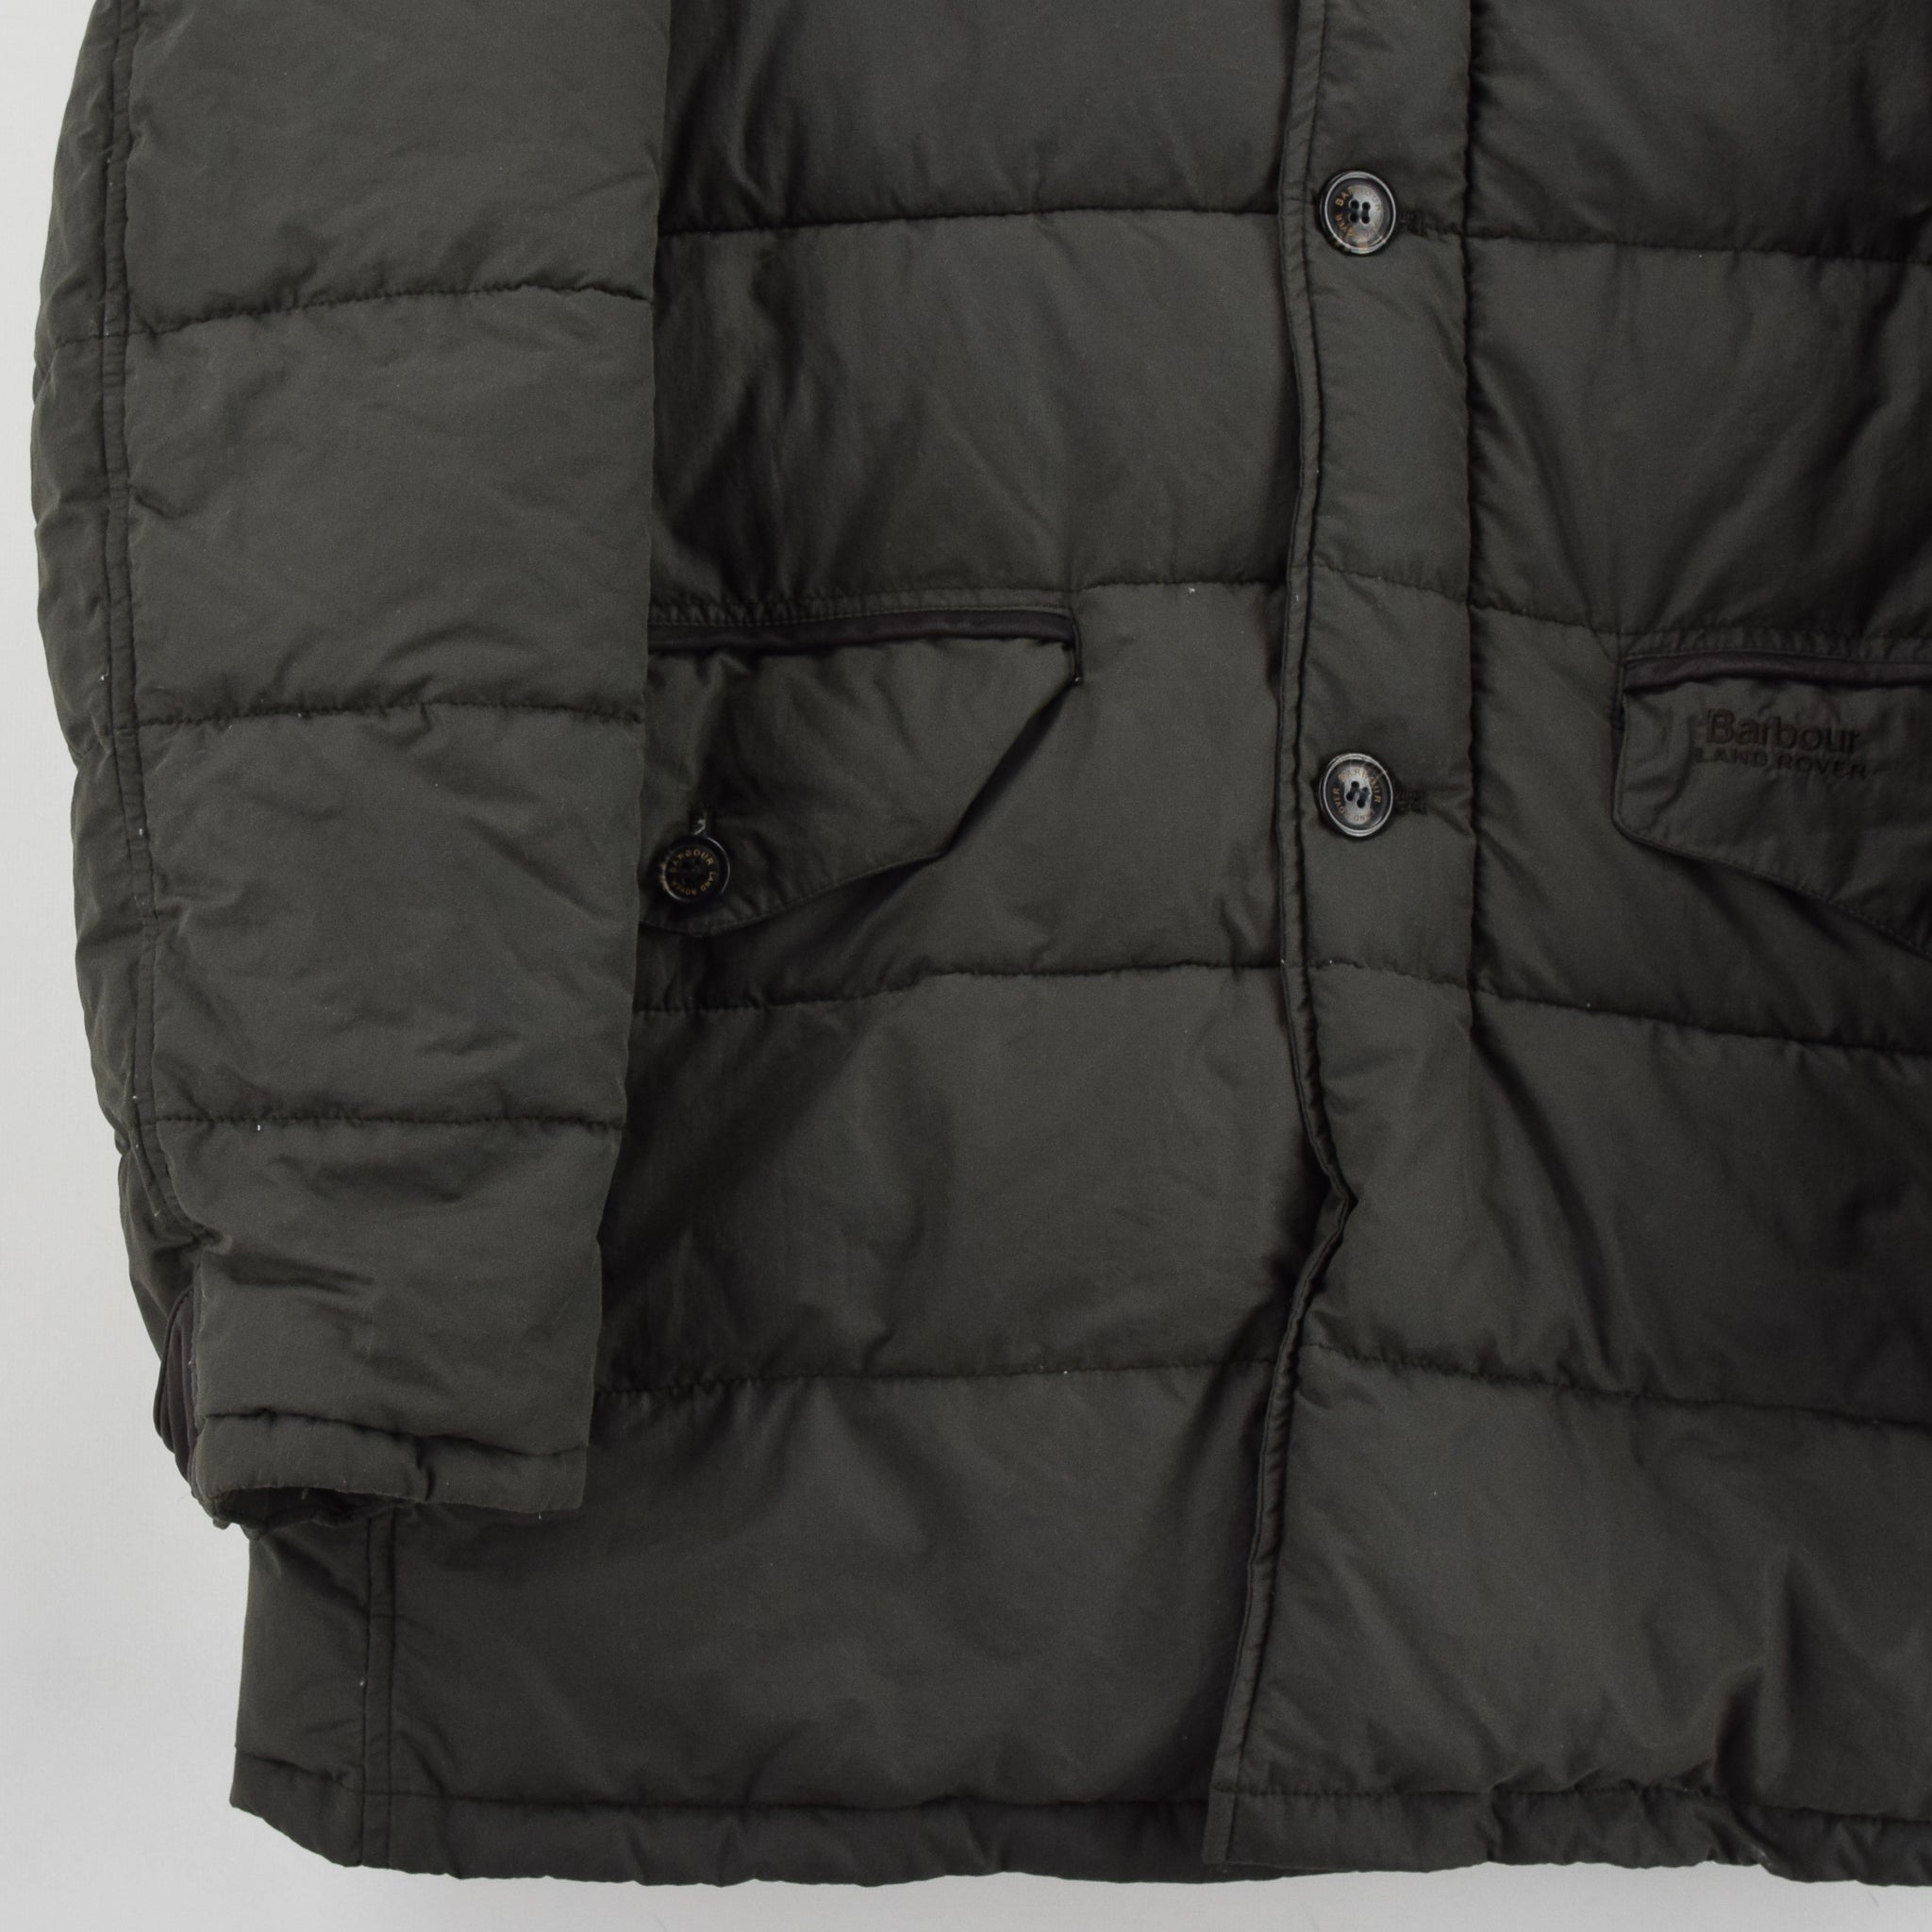 Barbour Land Rover Green Quilted Coat Fibre Down Jacket M front hem